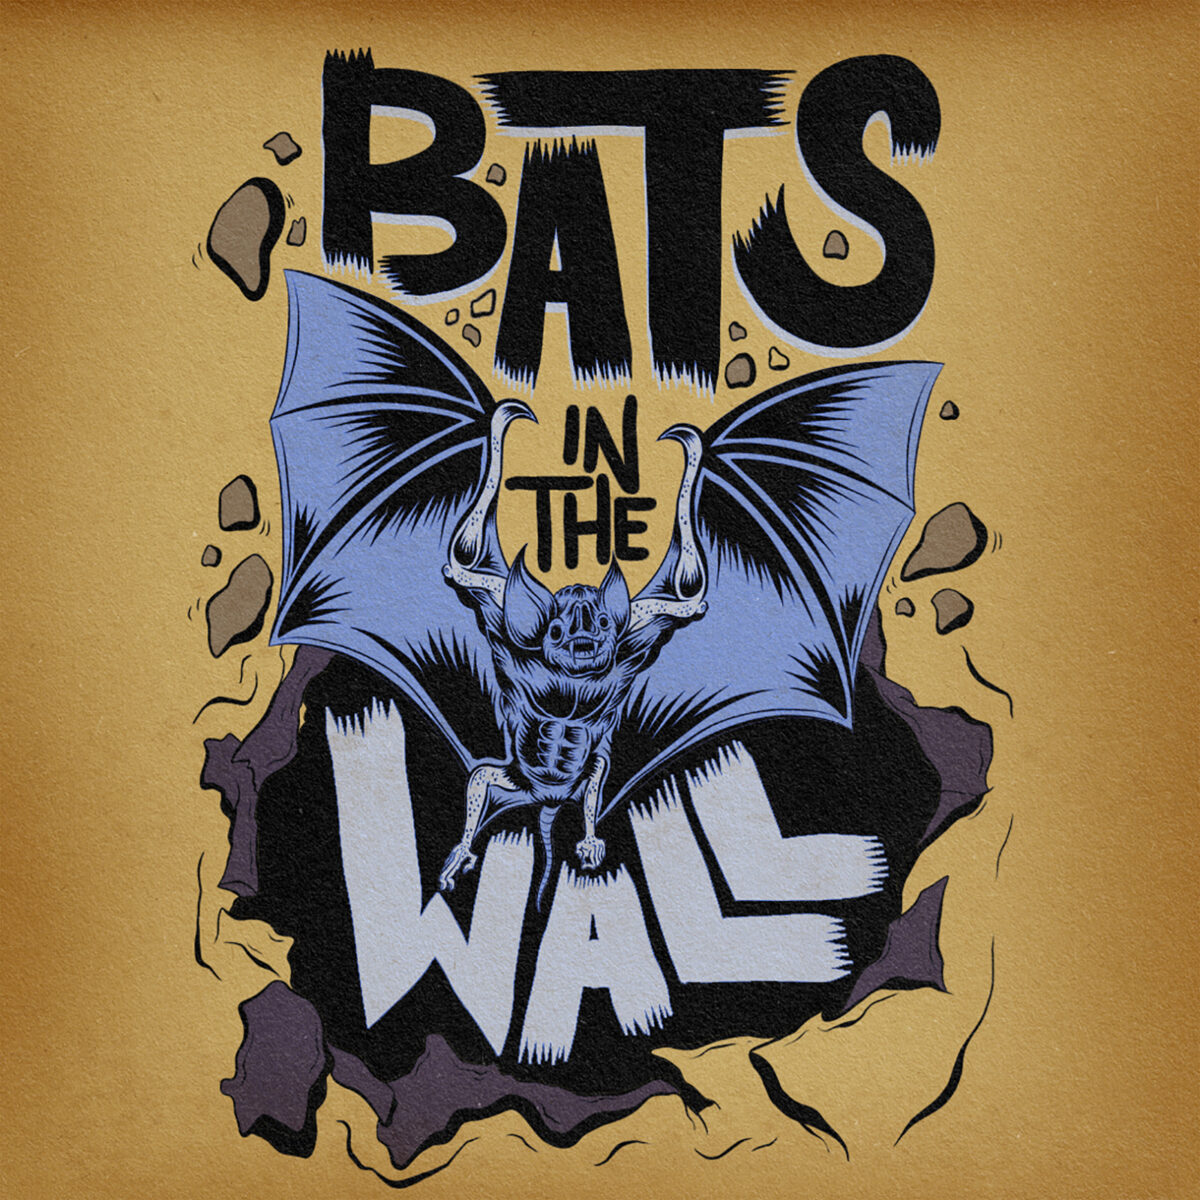 Bats in the Wall